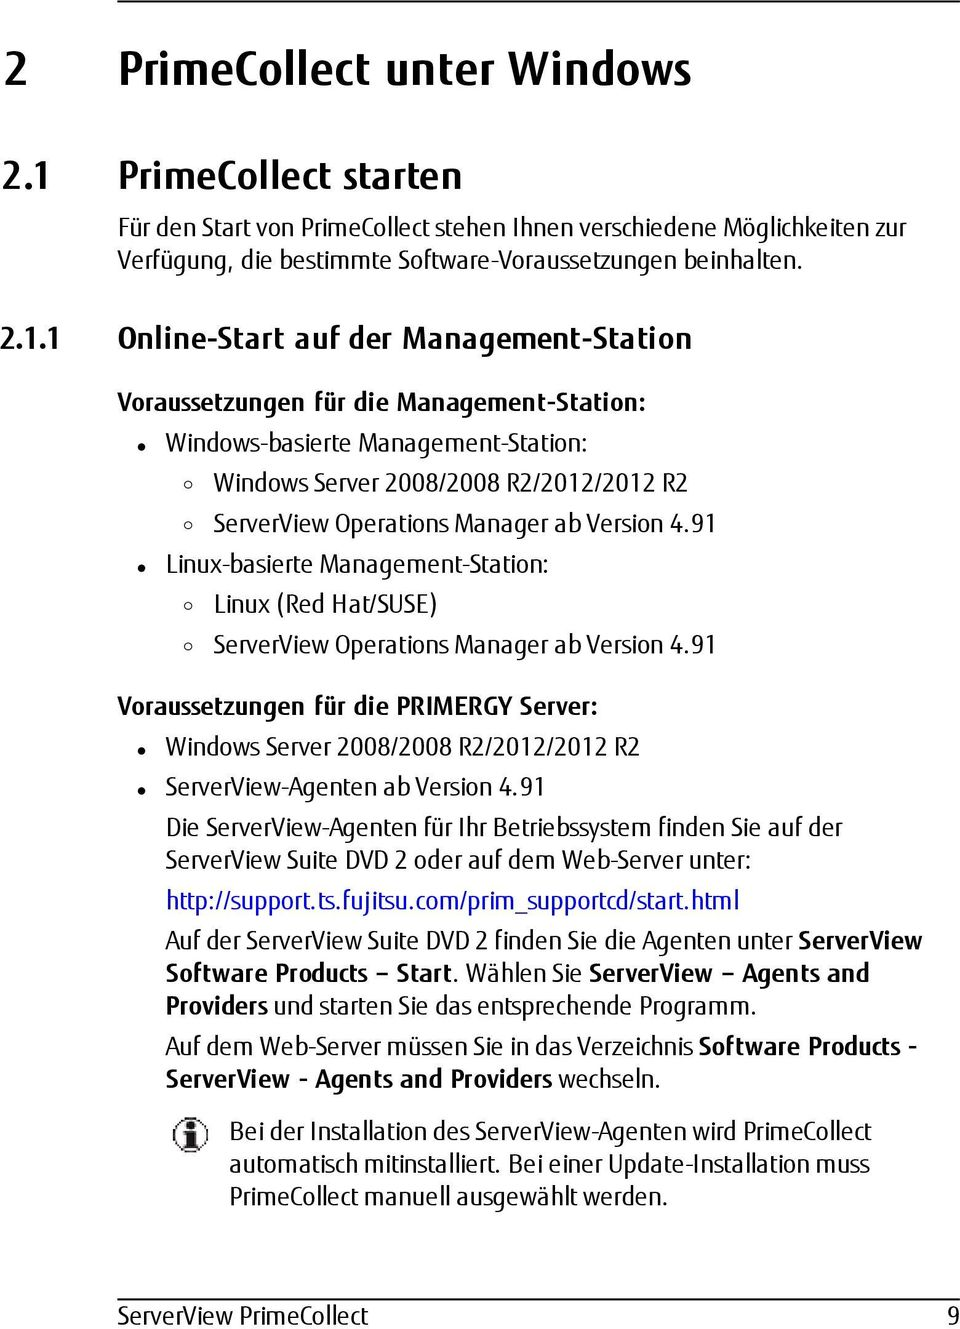 1 Online-Start auf der Management-Statin Vraussetzungen für die Management-Statin: Windws-basierte Management-Statin: Windws Server 2008/2008 R2/2012/2012 R2 ServerView Operatins Manager ab Versin 4.